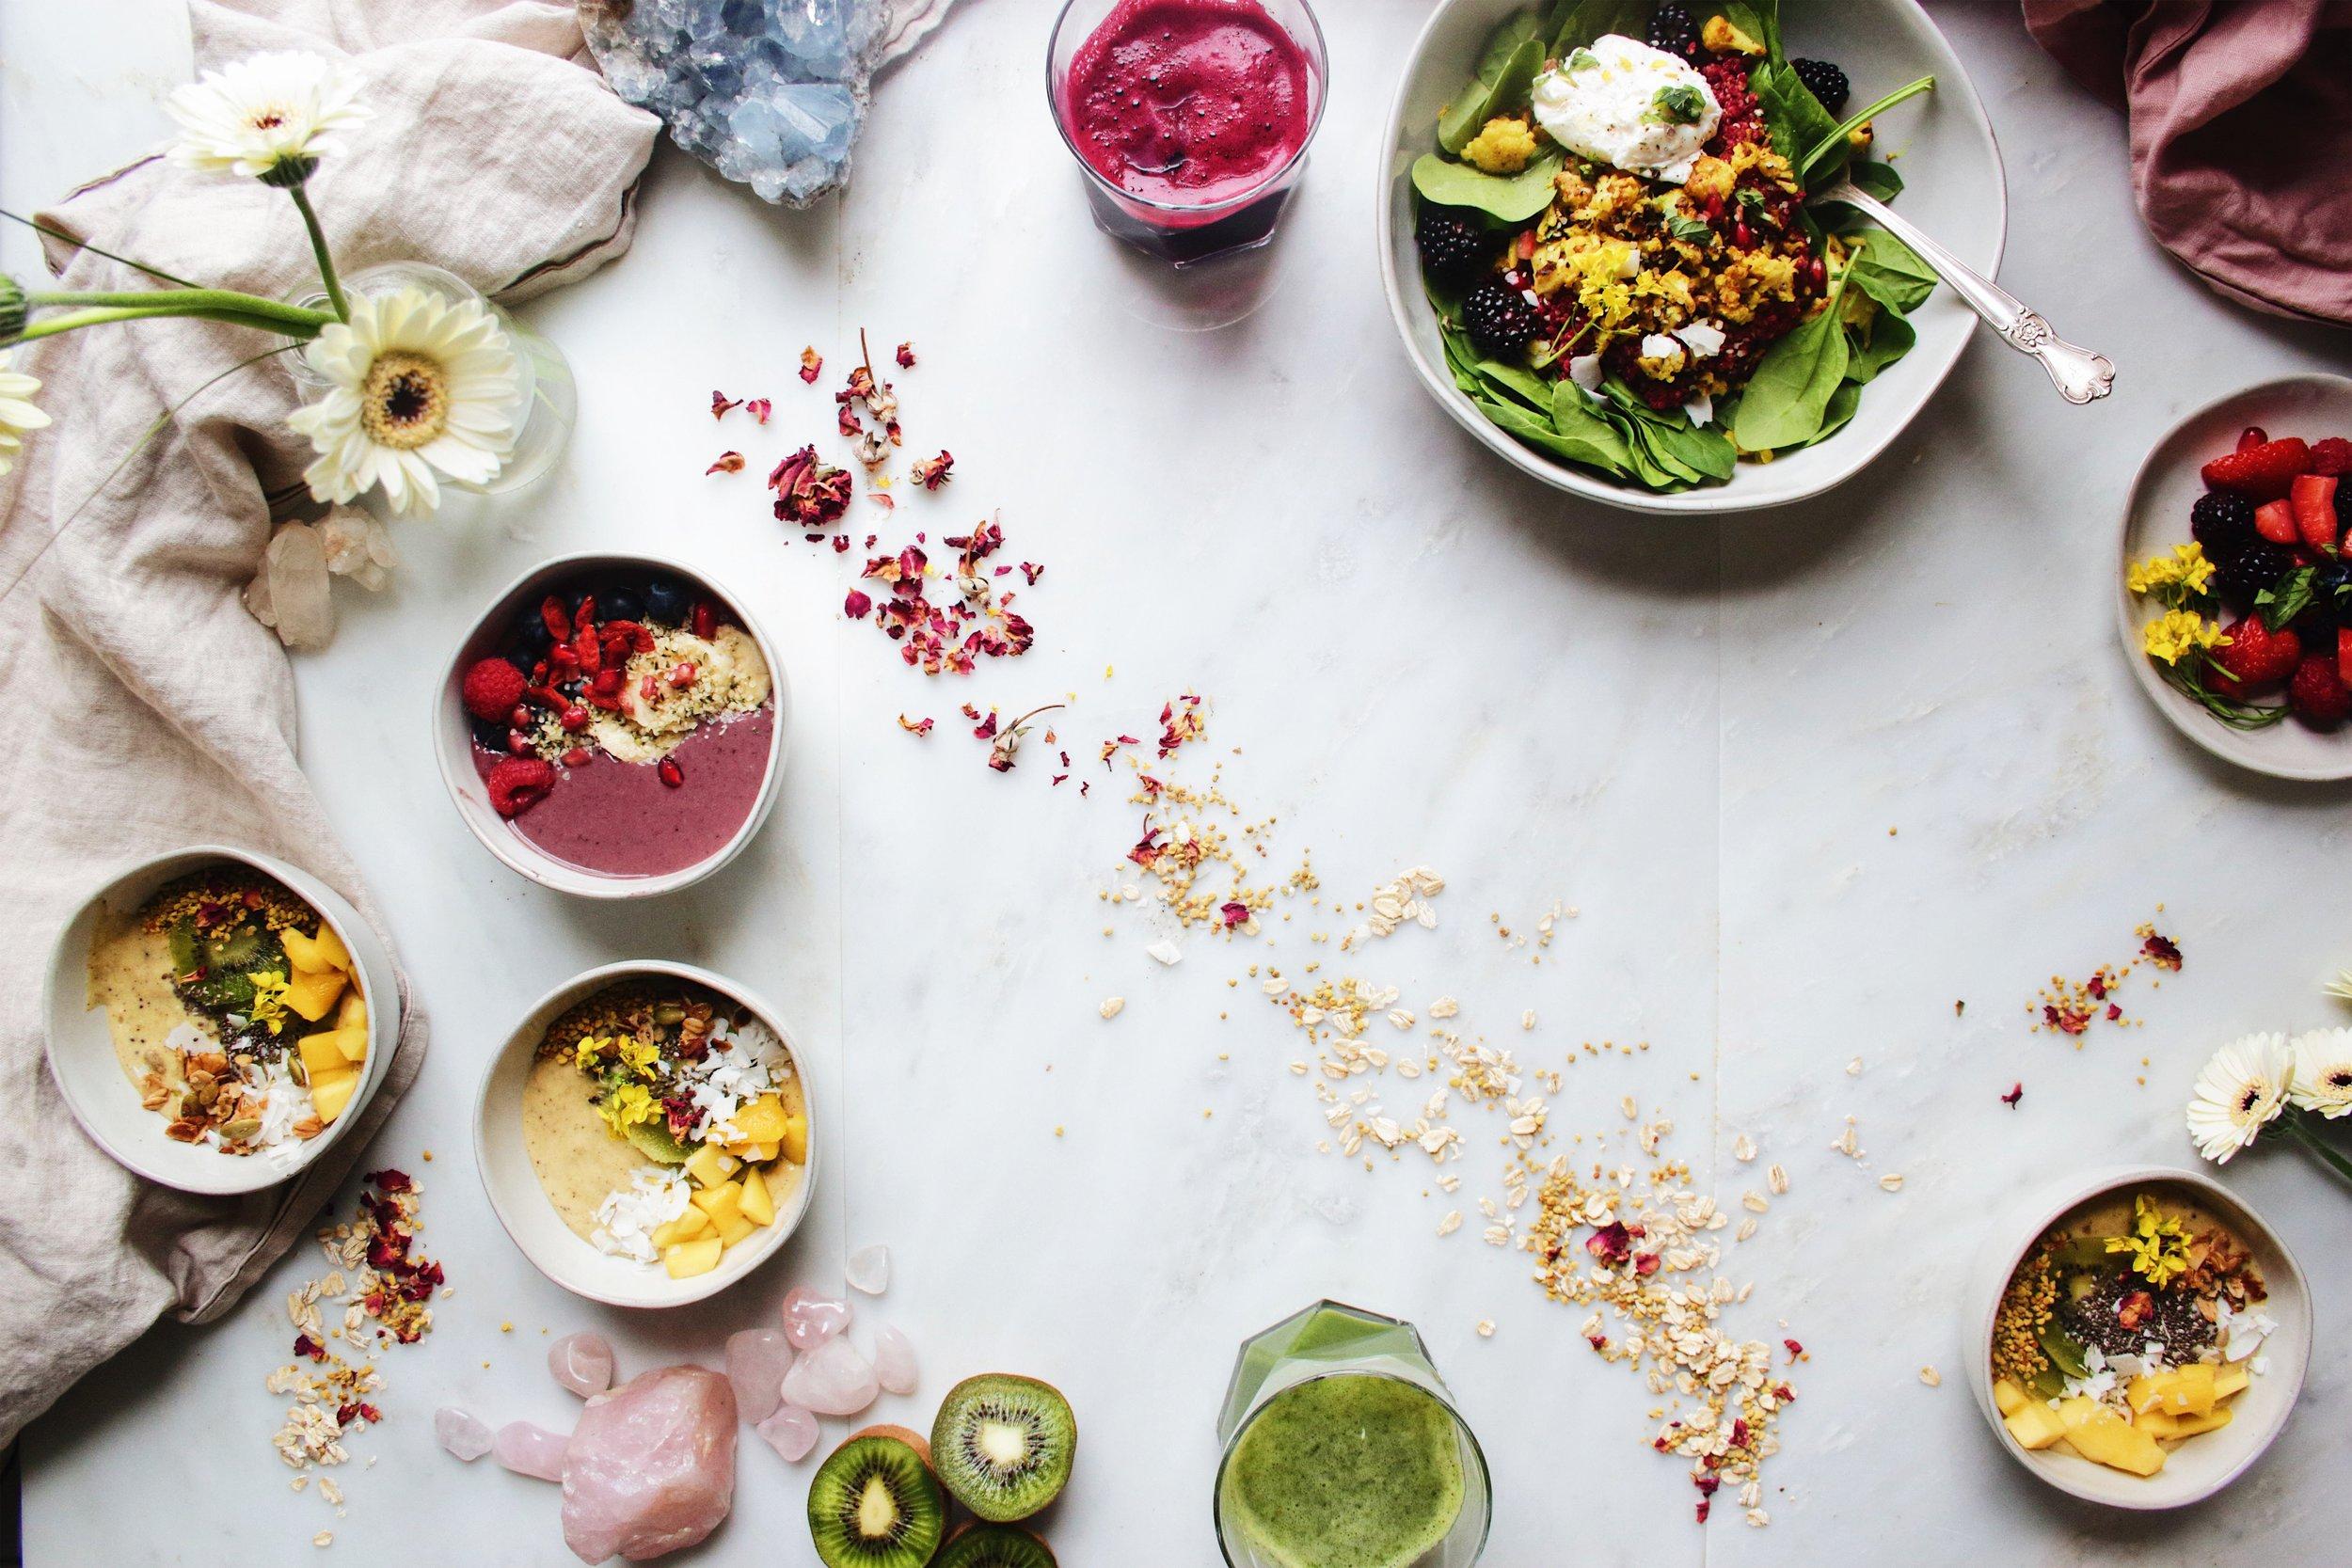 Join me for a one day intensive workshop to learn the fundamentals of Food Styling and Photography. -